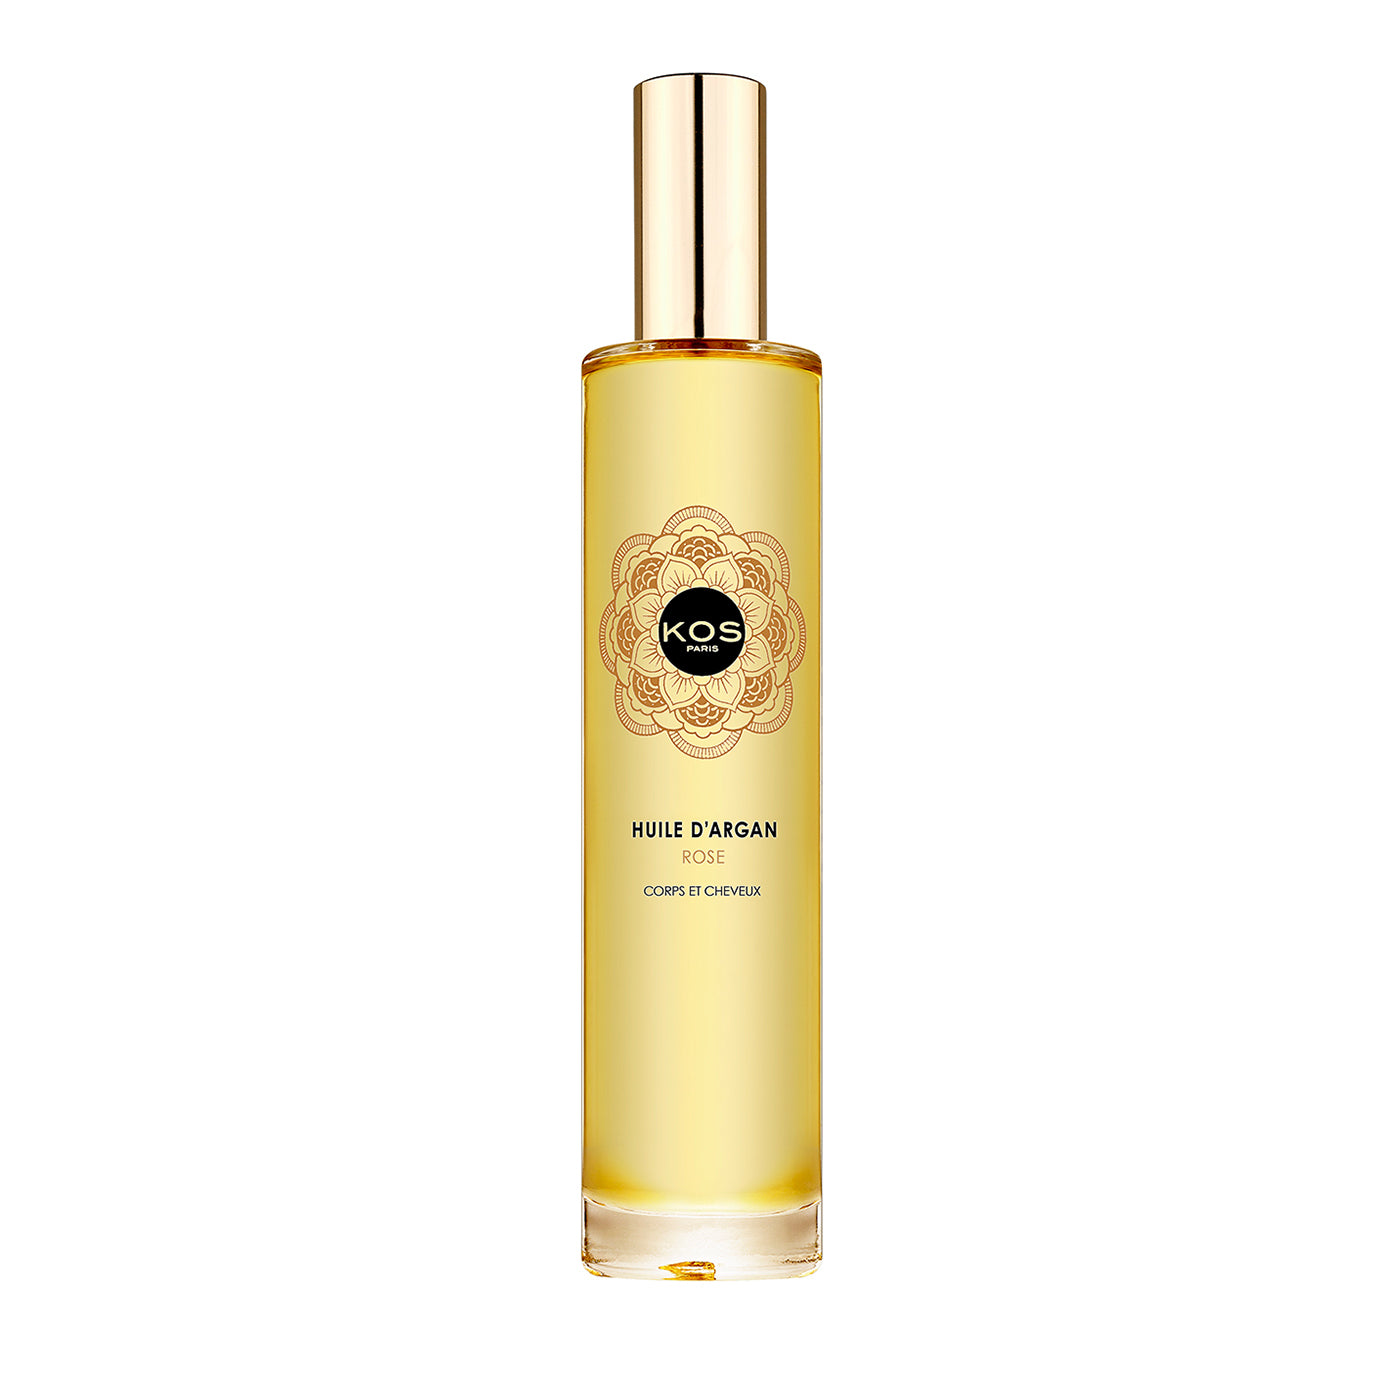 KOS Paris Rose Argan Oil for Body & Hair